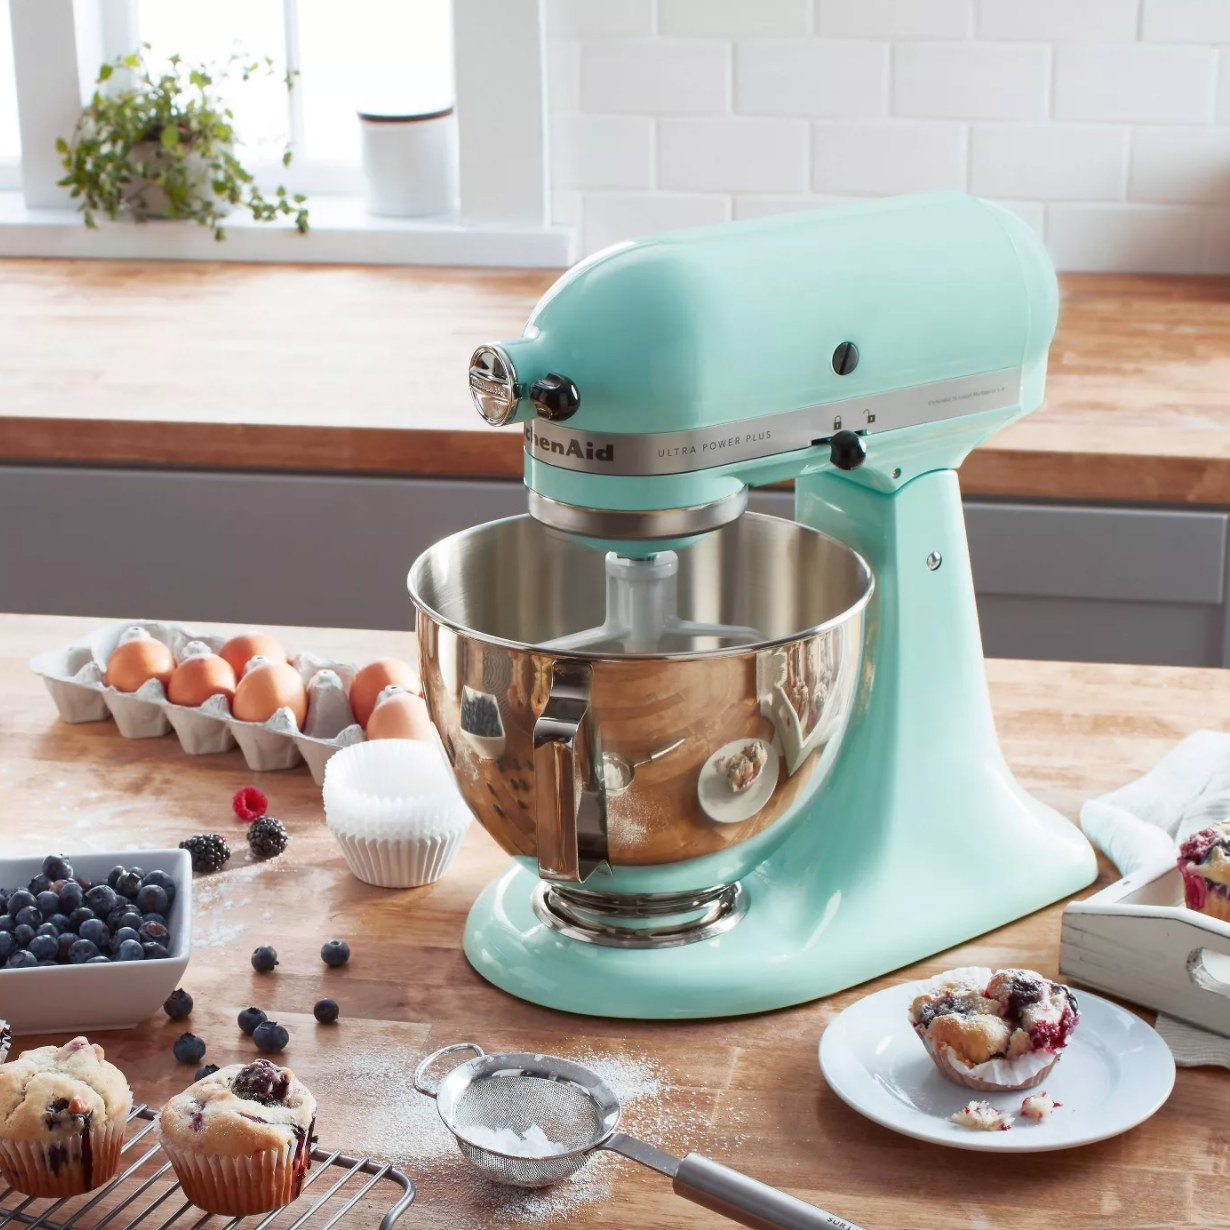 A teal blue stand mixer with paddle attachment and silver mixing bowl